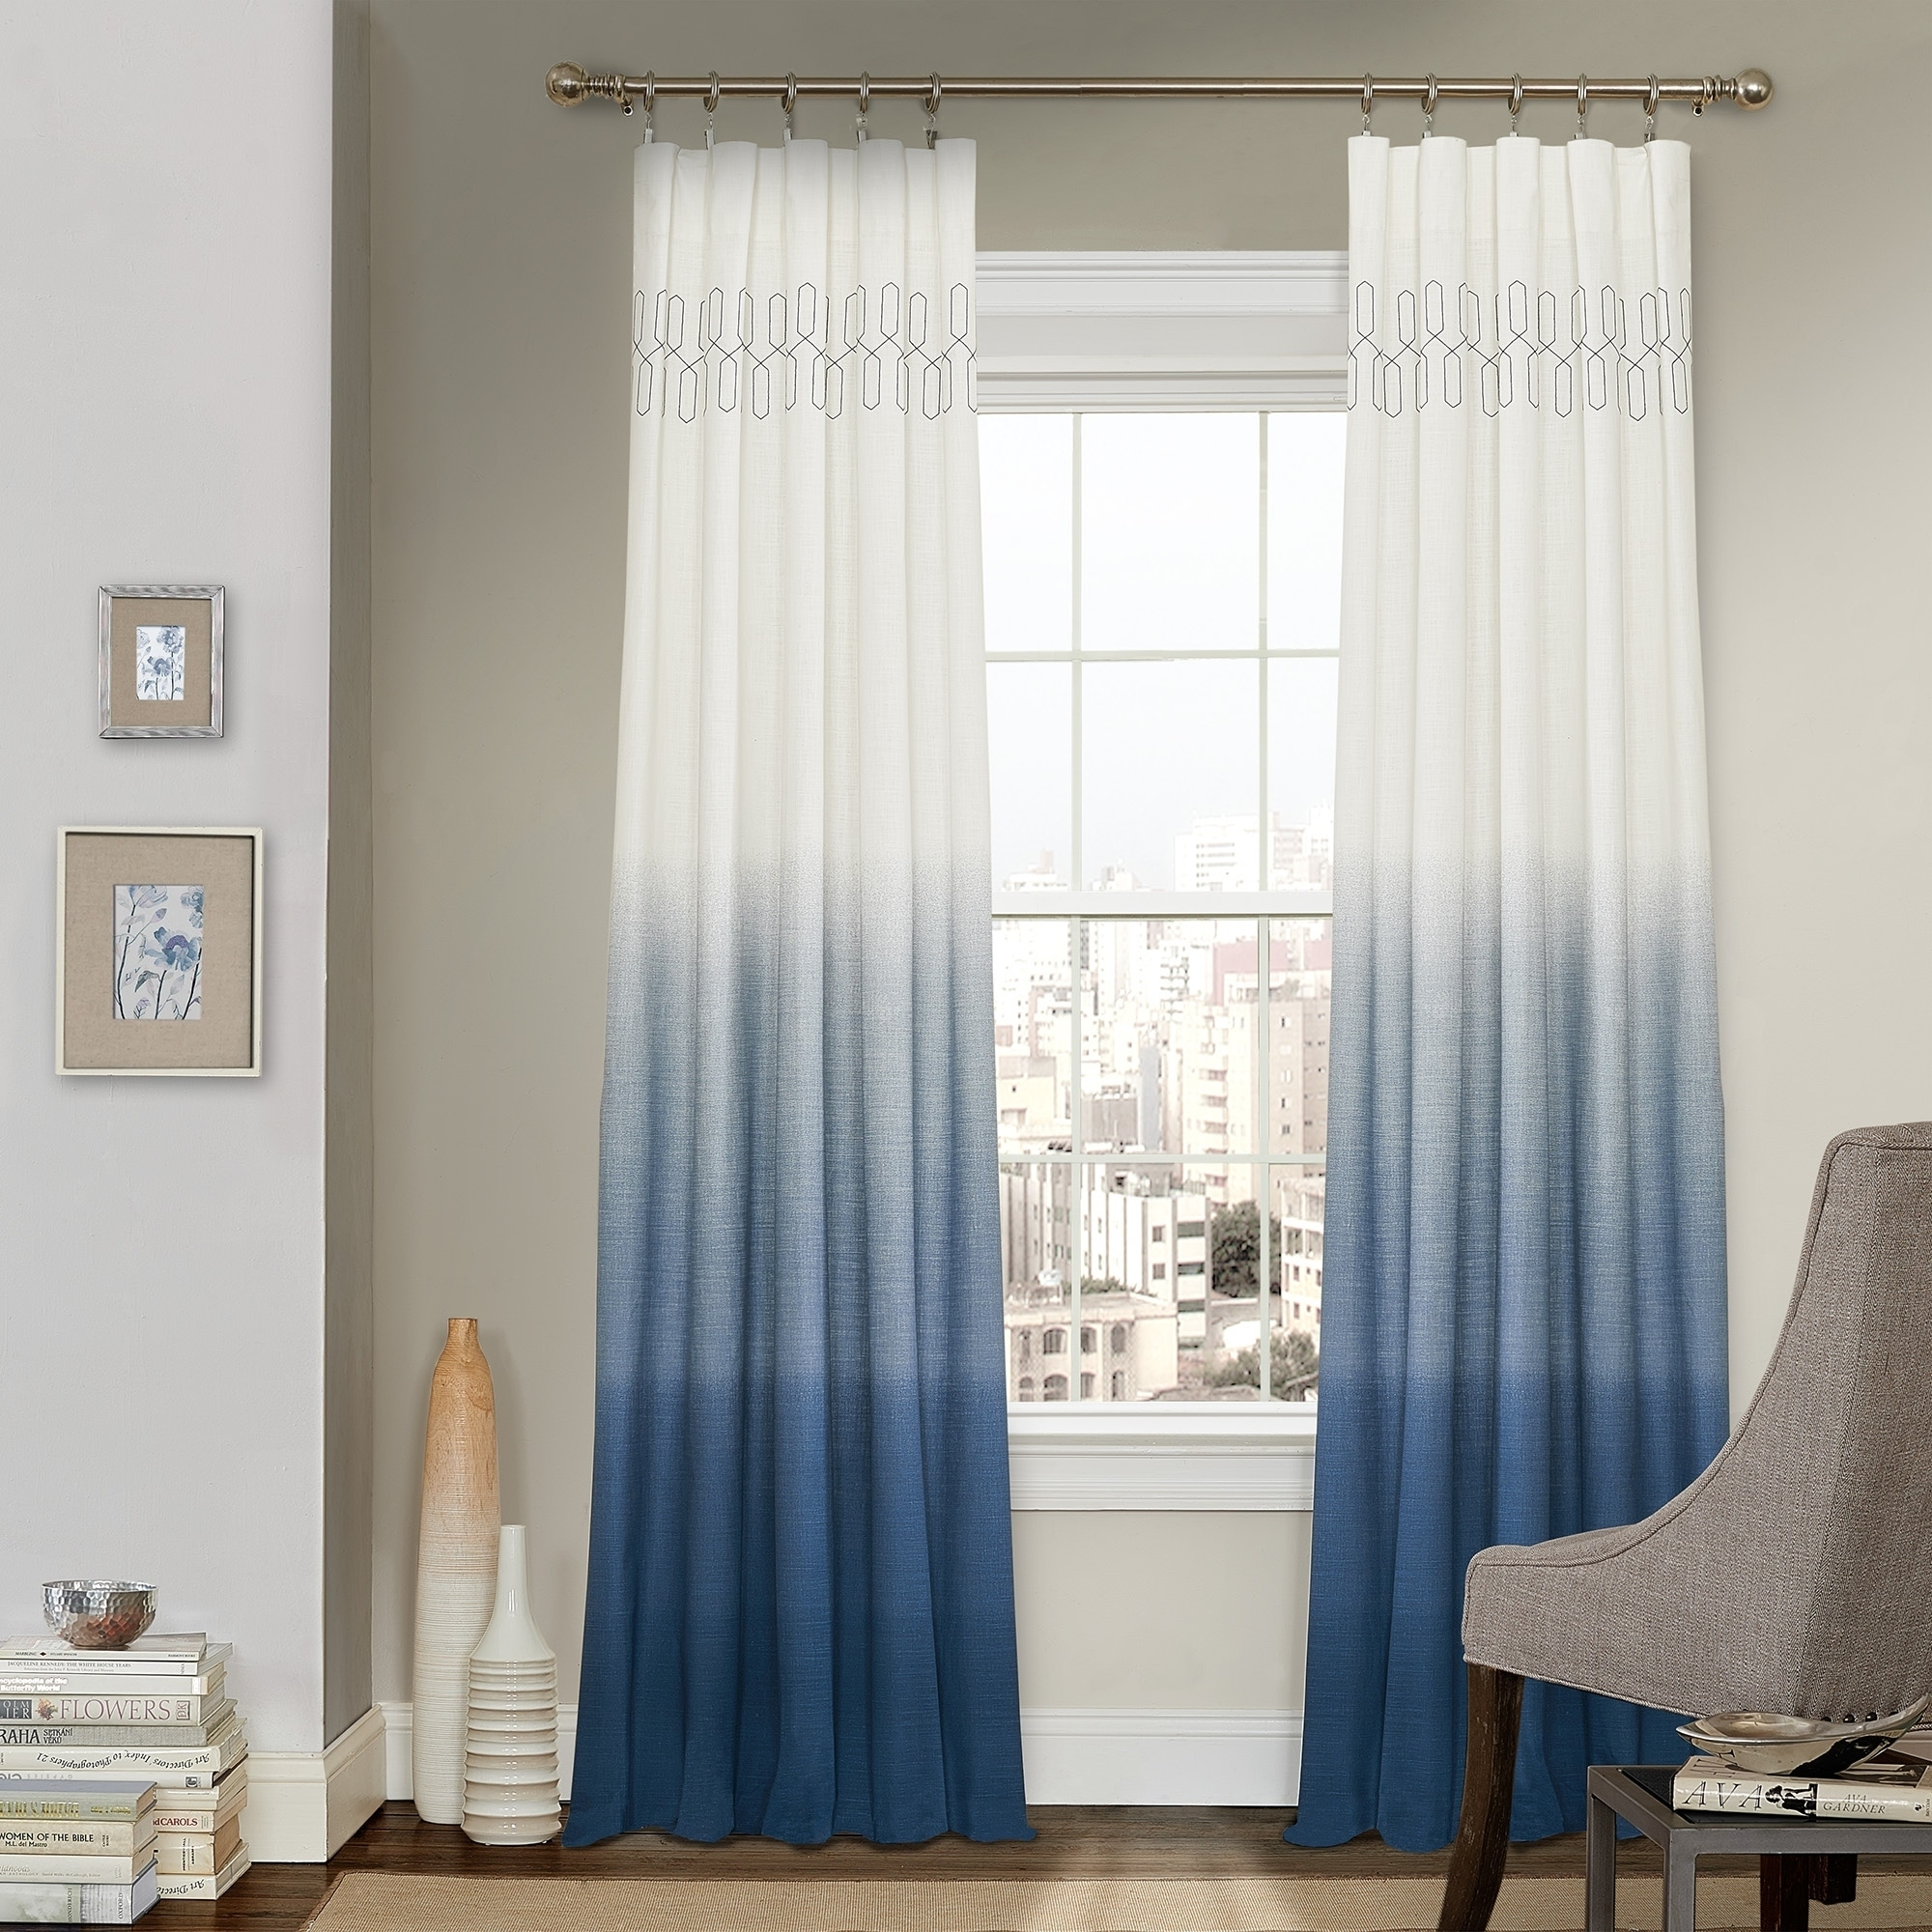 home curtain pocket treatments curtains rod window sheer ombre wayfair pdx semi panels dainty solid